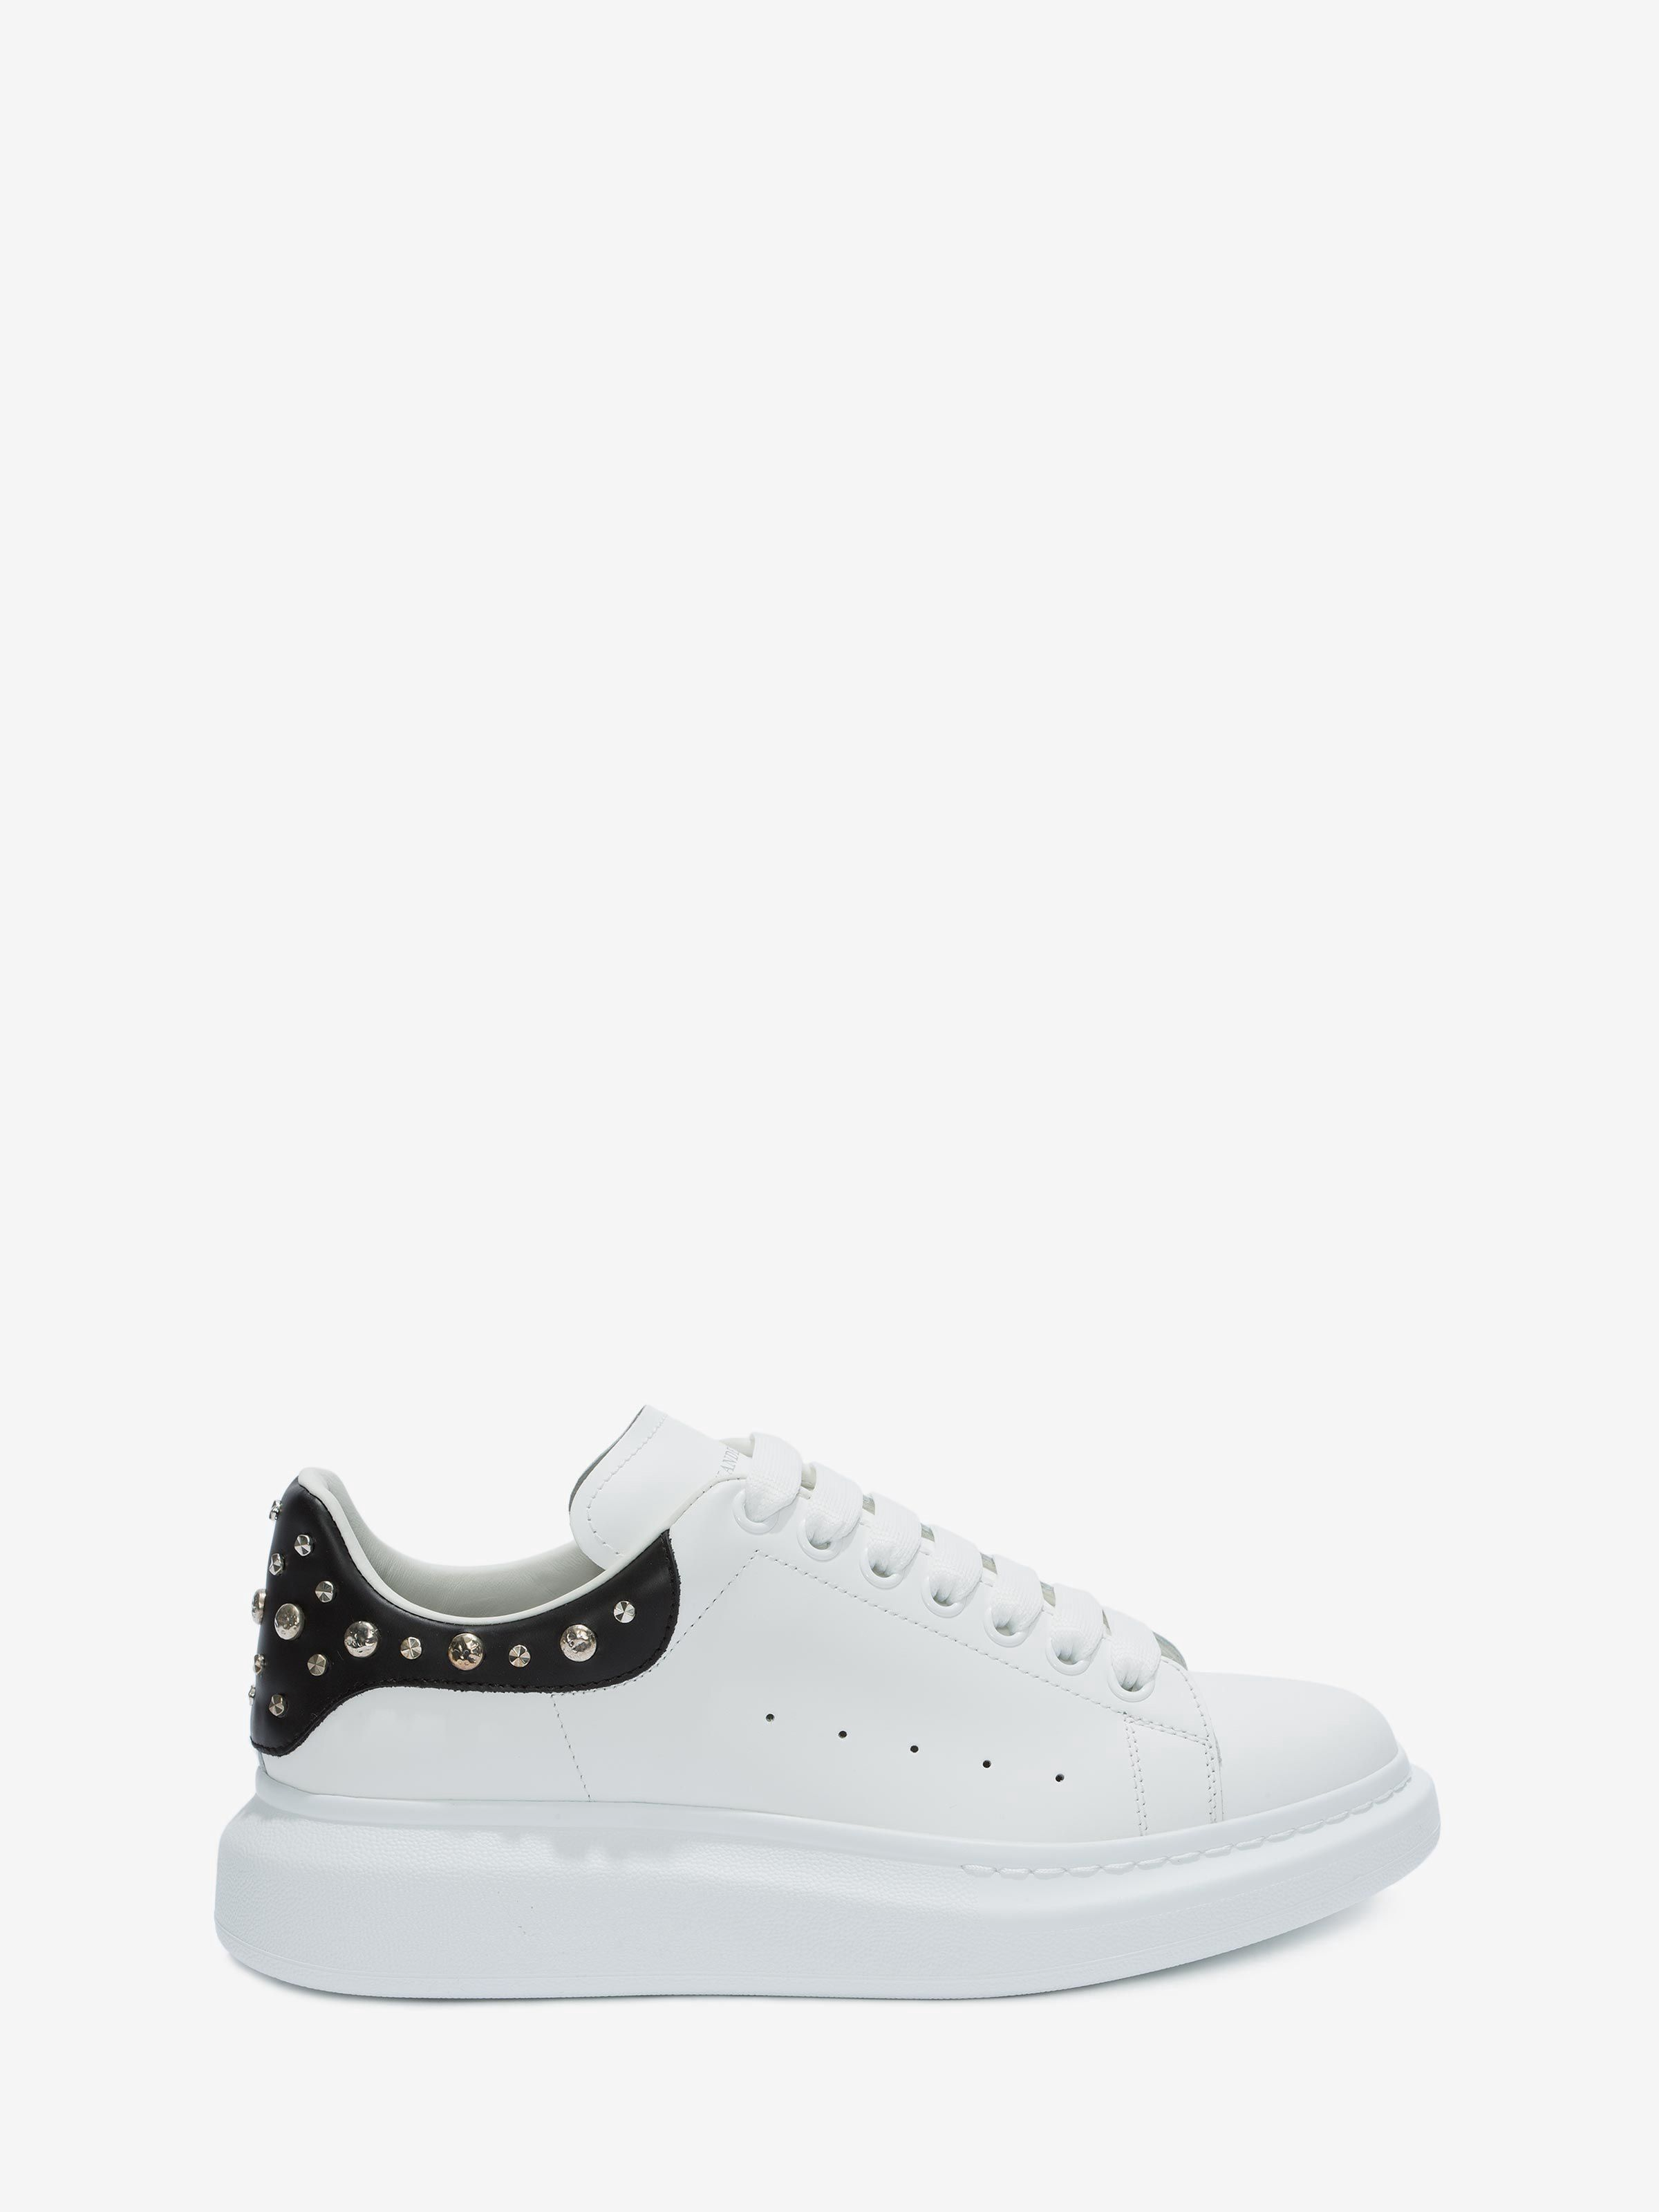 243e79a8bd0 Alexander Mcqueen Oversized Sneaker - Black 43.5 in 2019 | Products ...